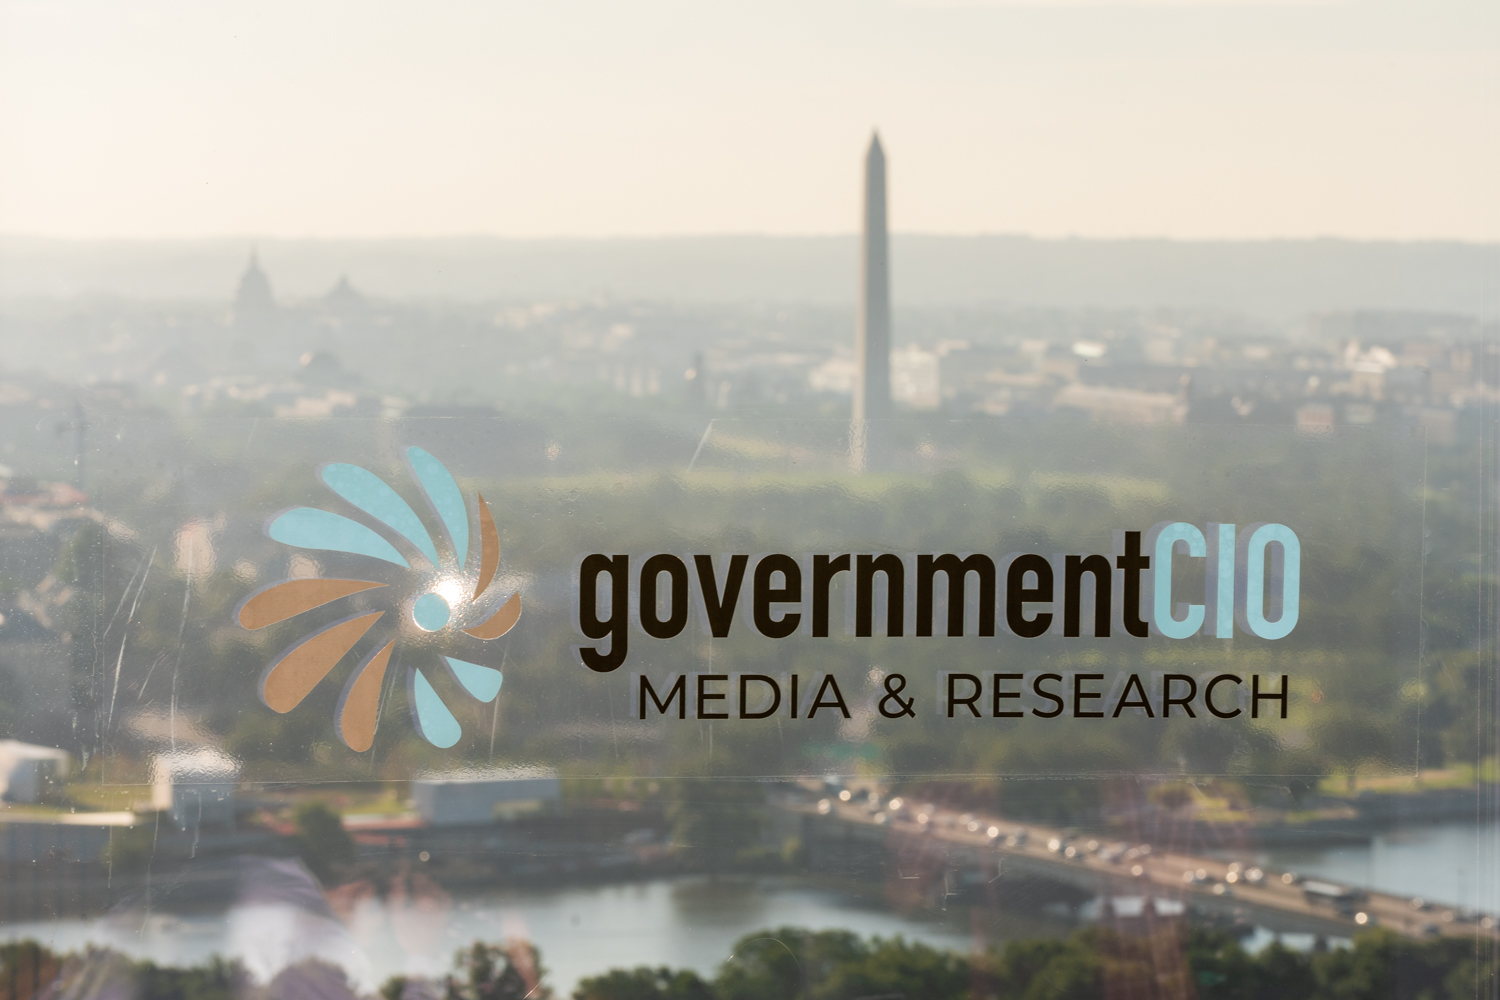 GovernmentCIO Media & Research logo with view of the Washington Monument